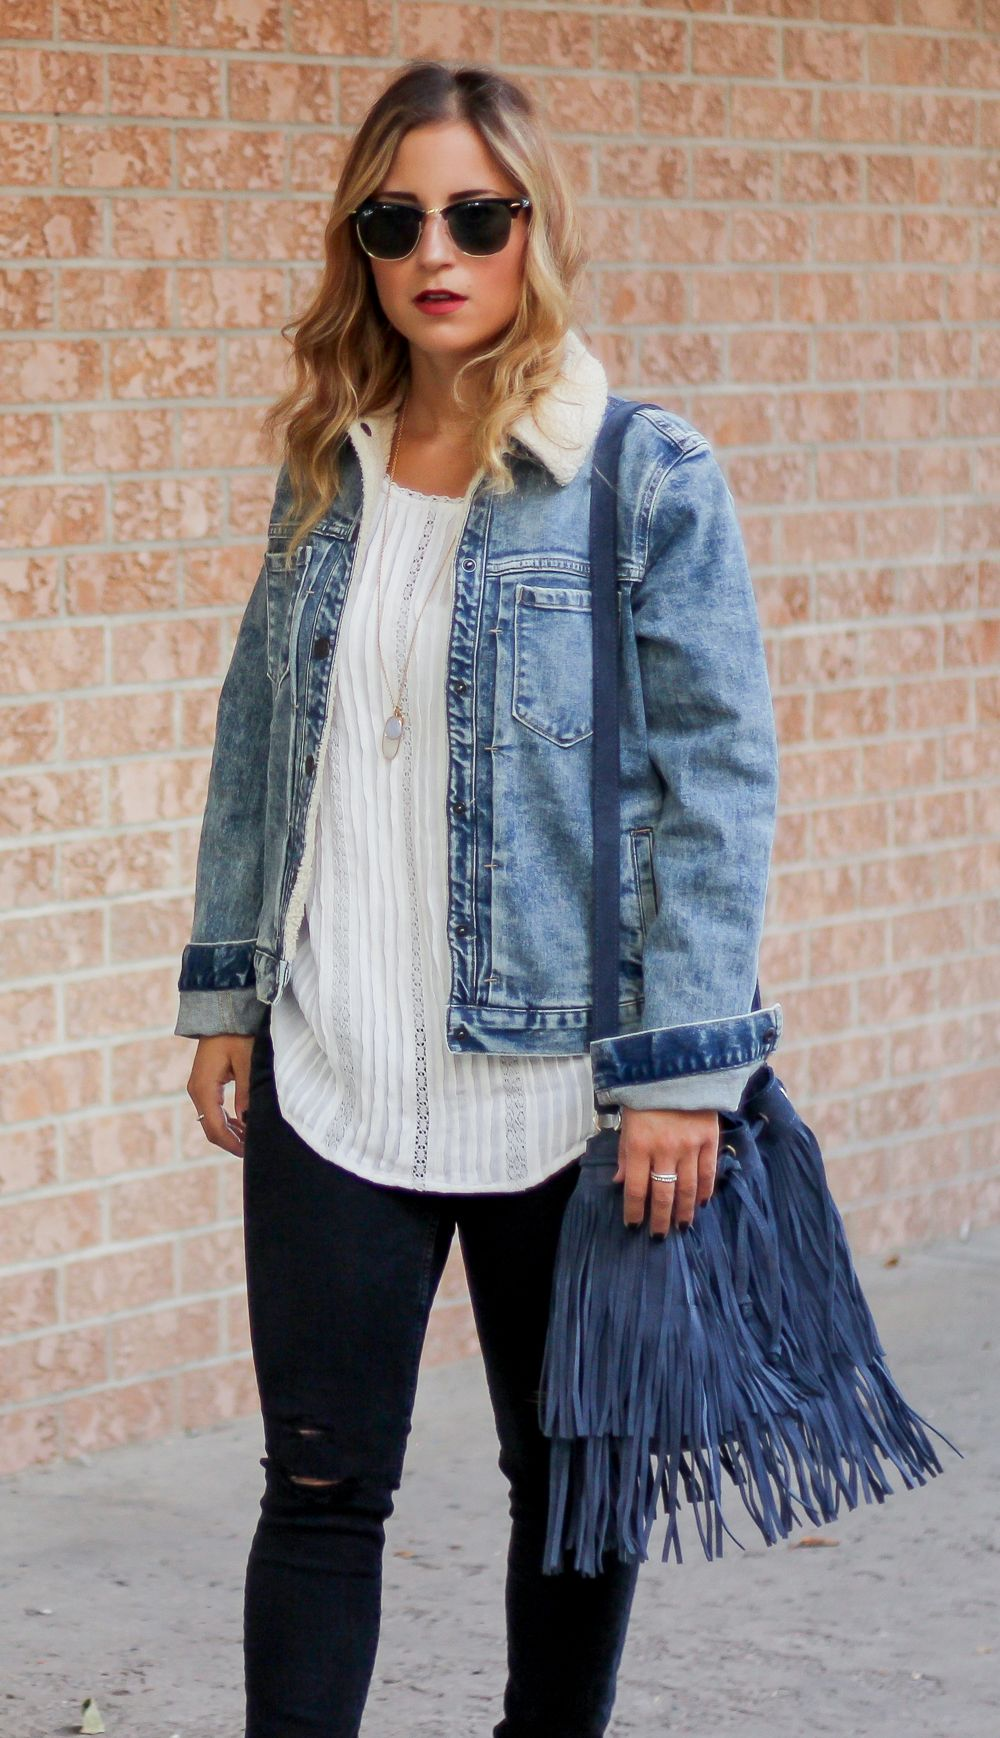 Fall Must Have Item Sherpa Denim Jacket Something About That Fall Jackets Sherpa Denim Jacket Plaid Outfits Fall [ 1738 x 1000 Pixel ]